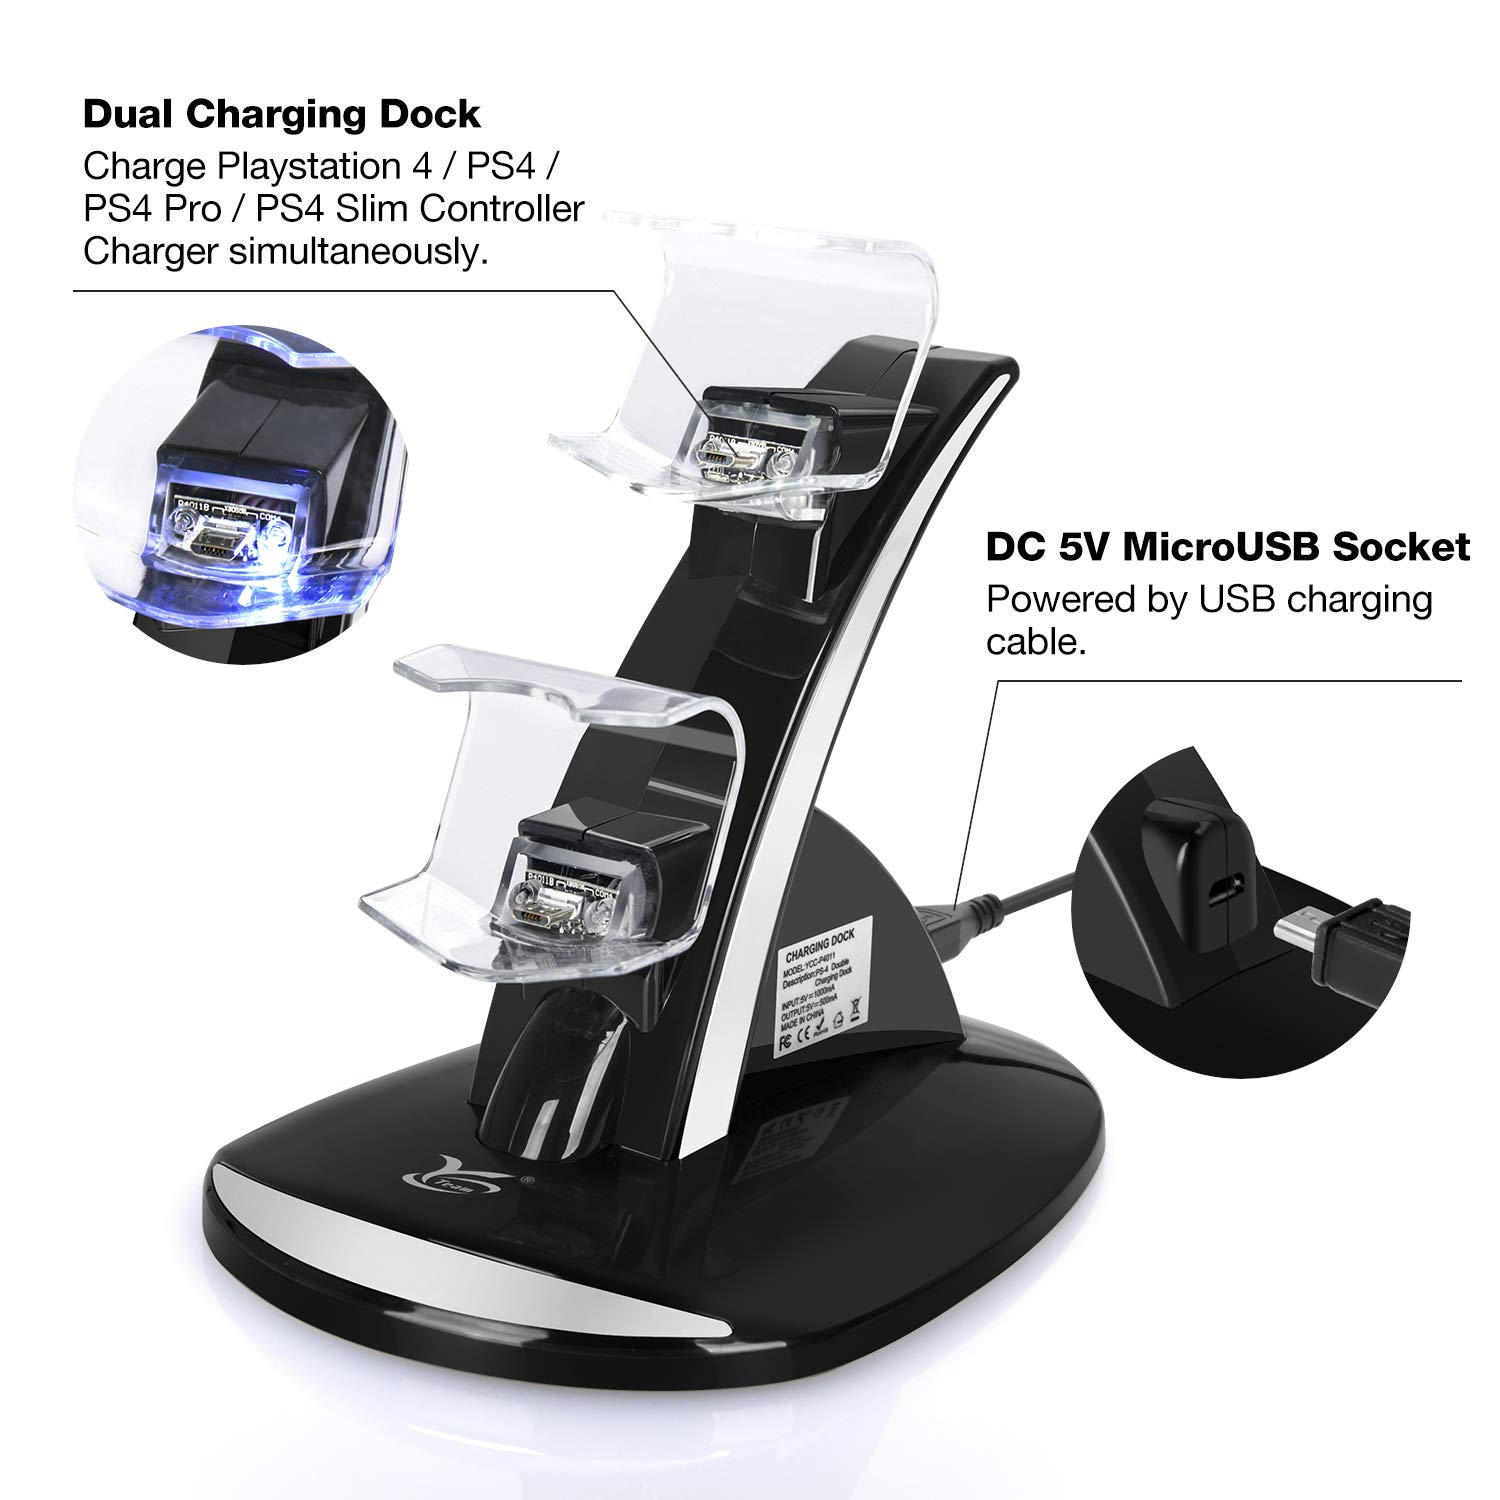 PS4 Controller Charger, Y Team Playstation 4 / PS4 / PS4 Pro / PS4 Slim Controller Charger Charging Docking Station Stand.Dual USB Fast Charging ...